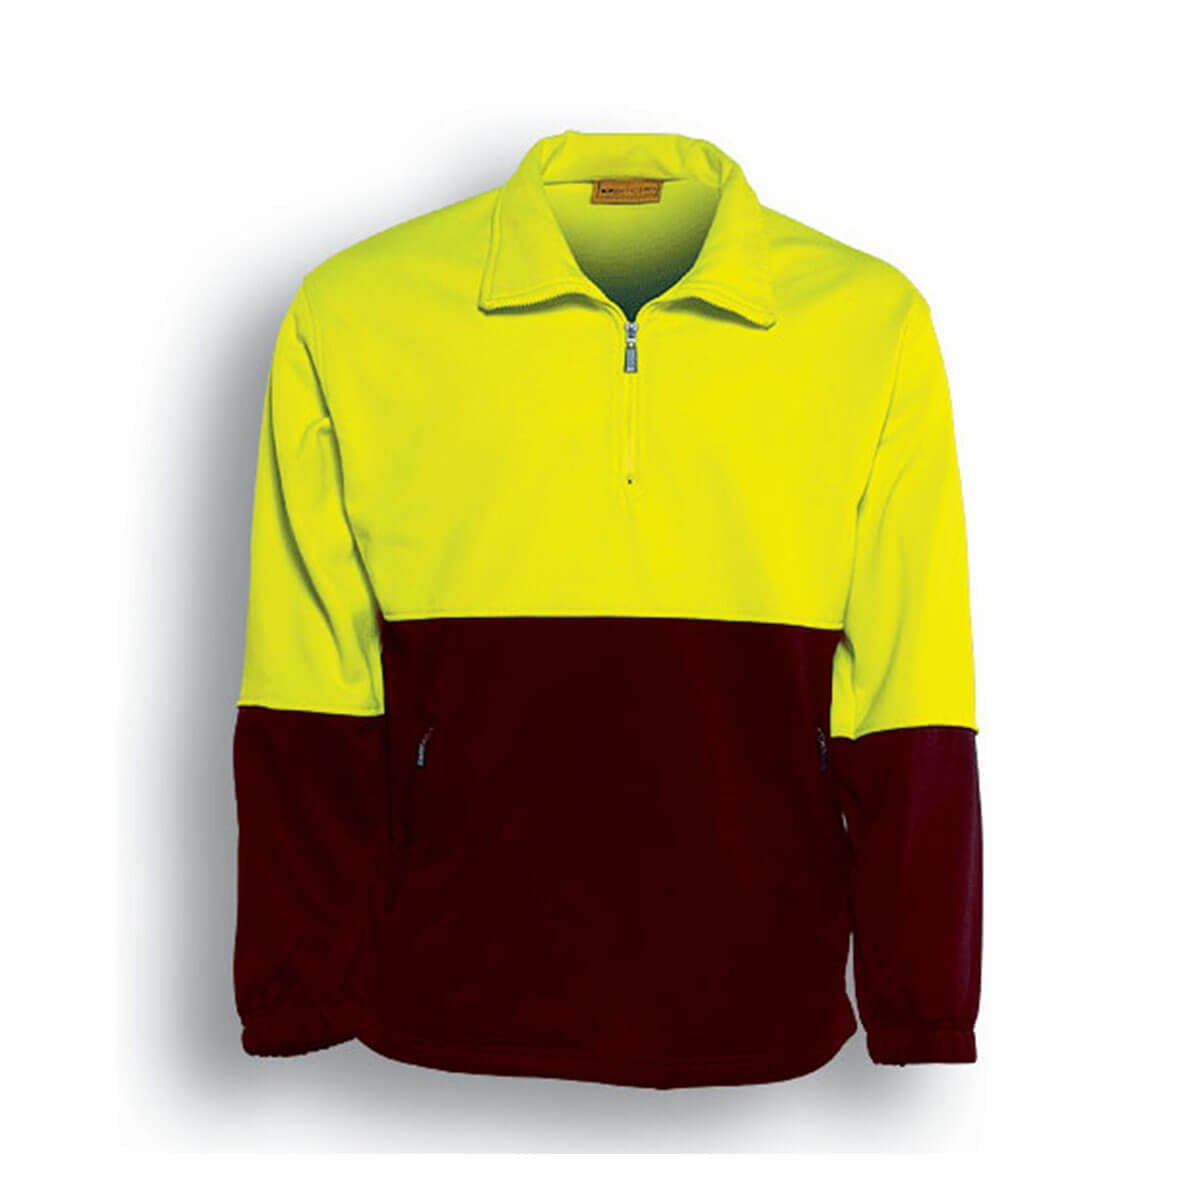 HI-VIS 1/2 ZIP FLEECE-Lime / Maroon